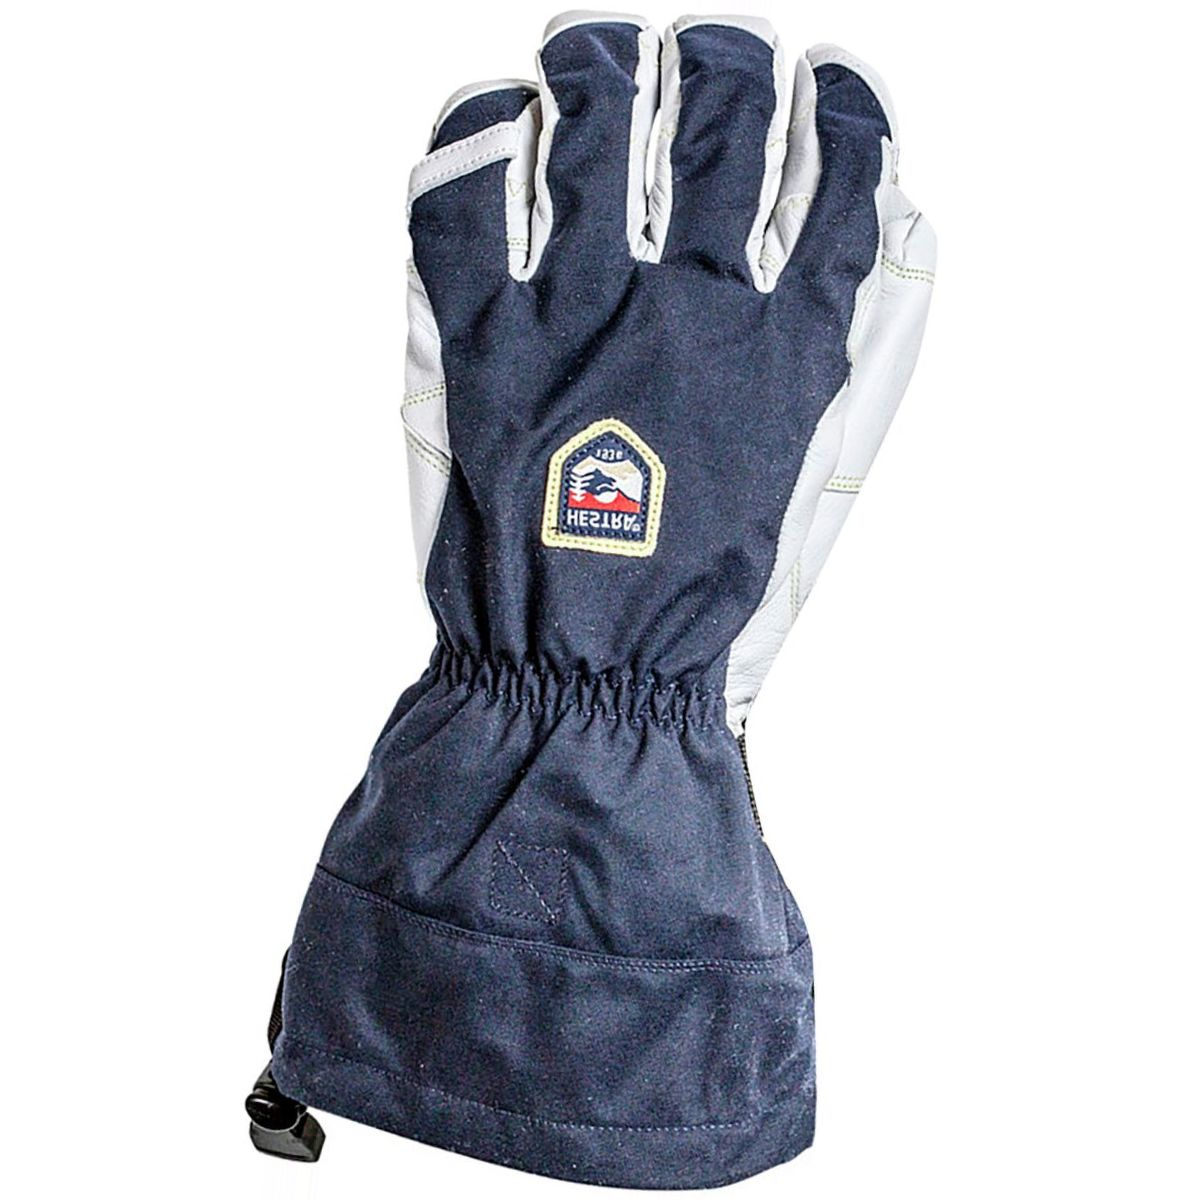 Hestra Heli Ergo Grip Glove - Men's